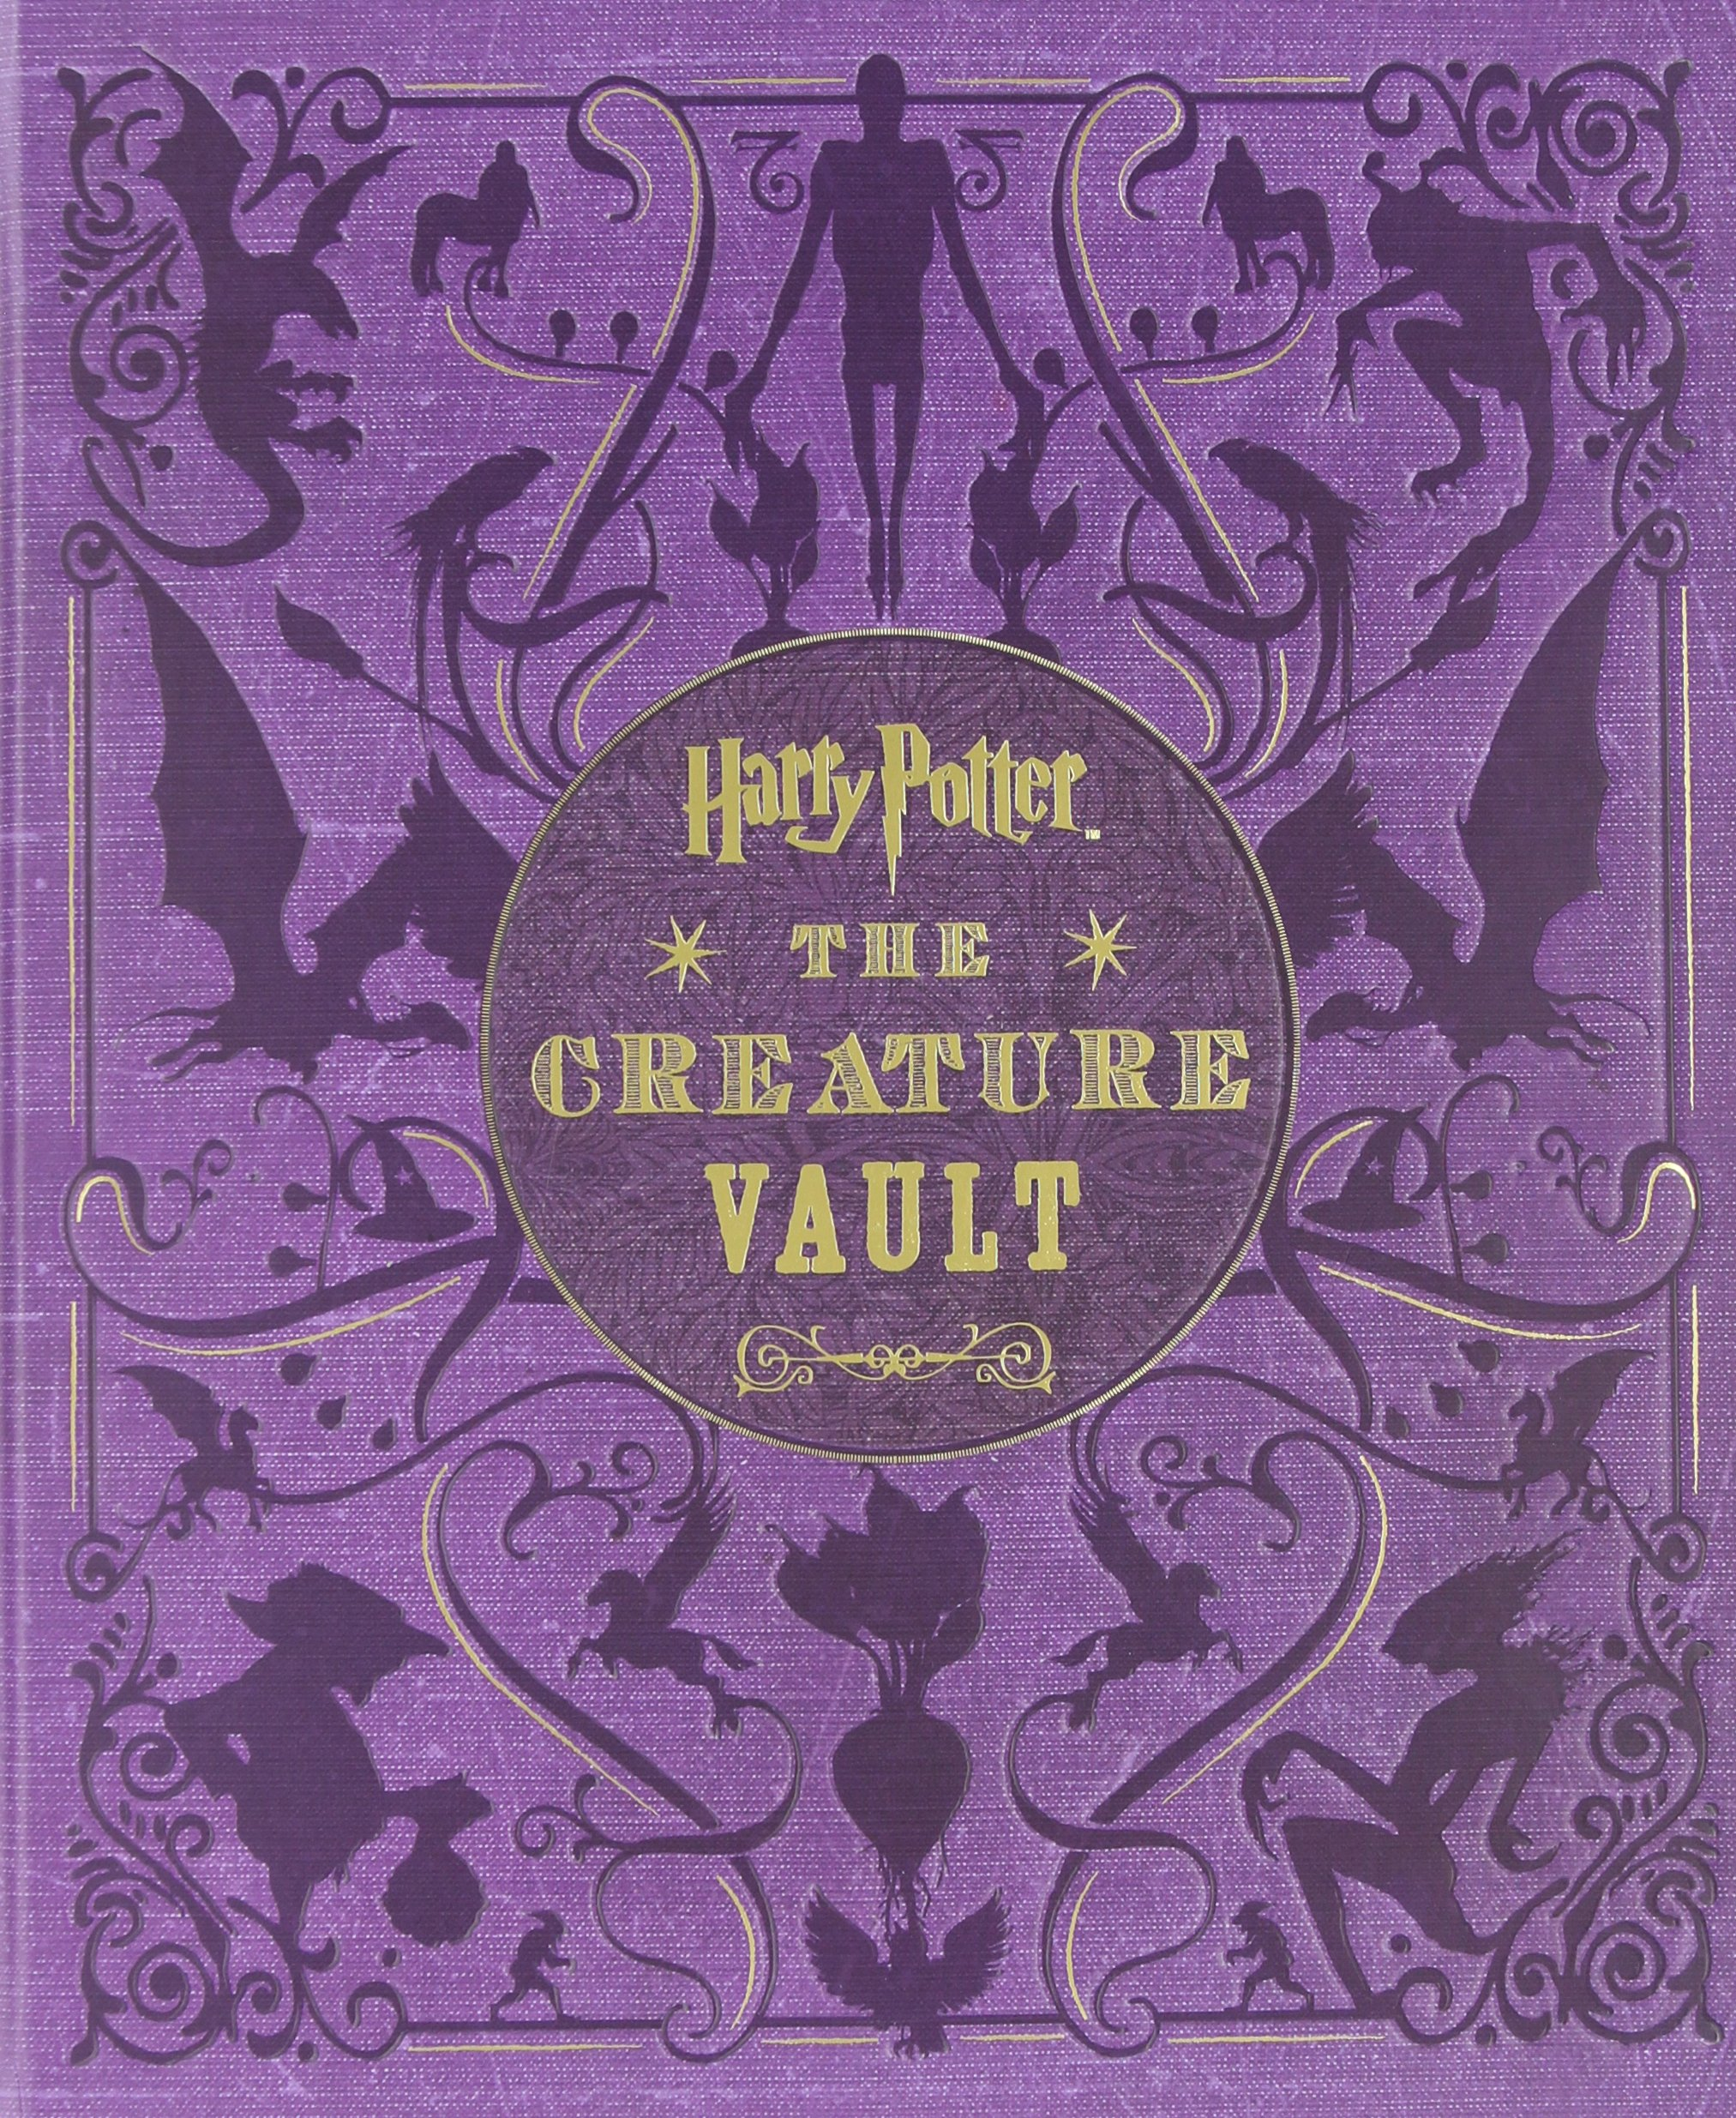 Harry Potter : The Creature Vault: The Creatures and Plants of the Harry Potter Films